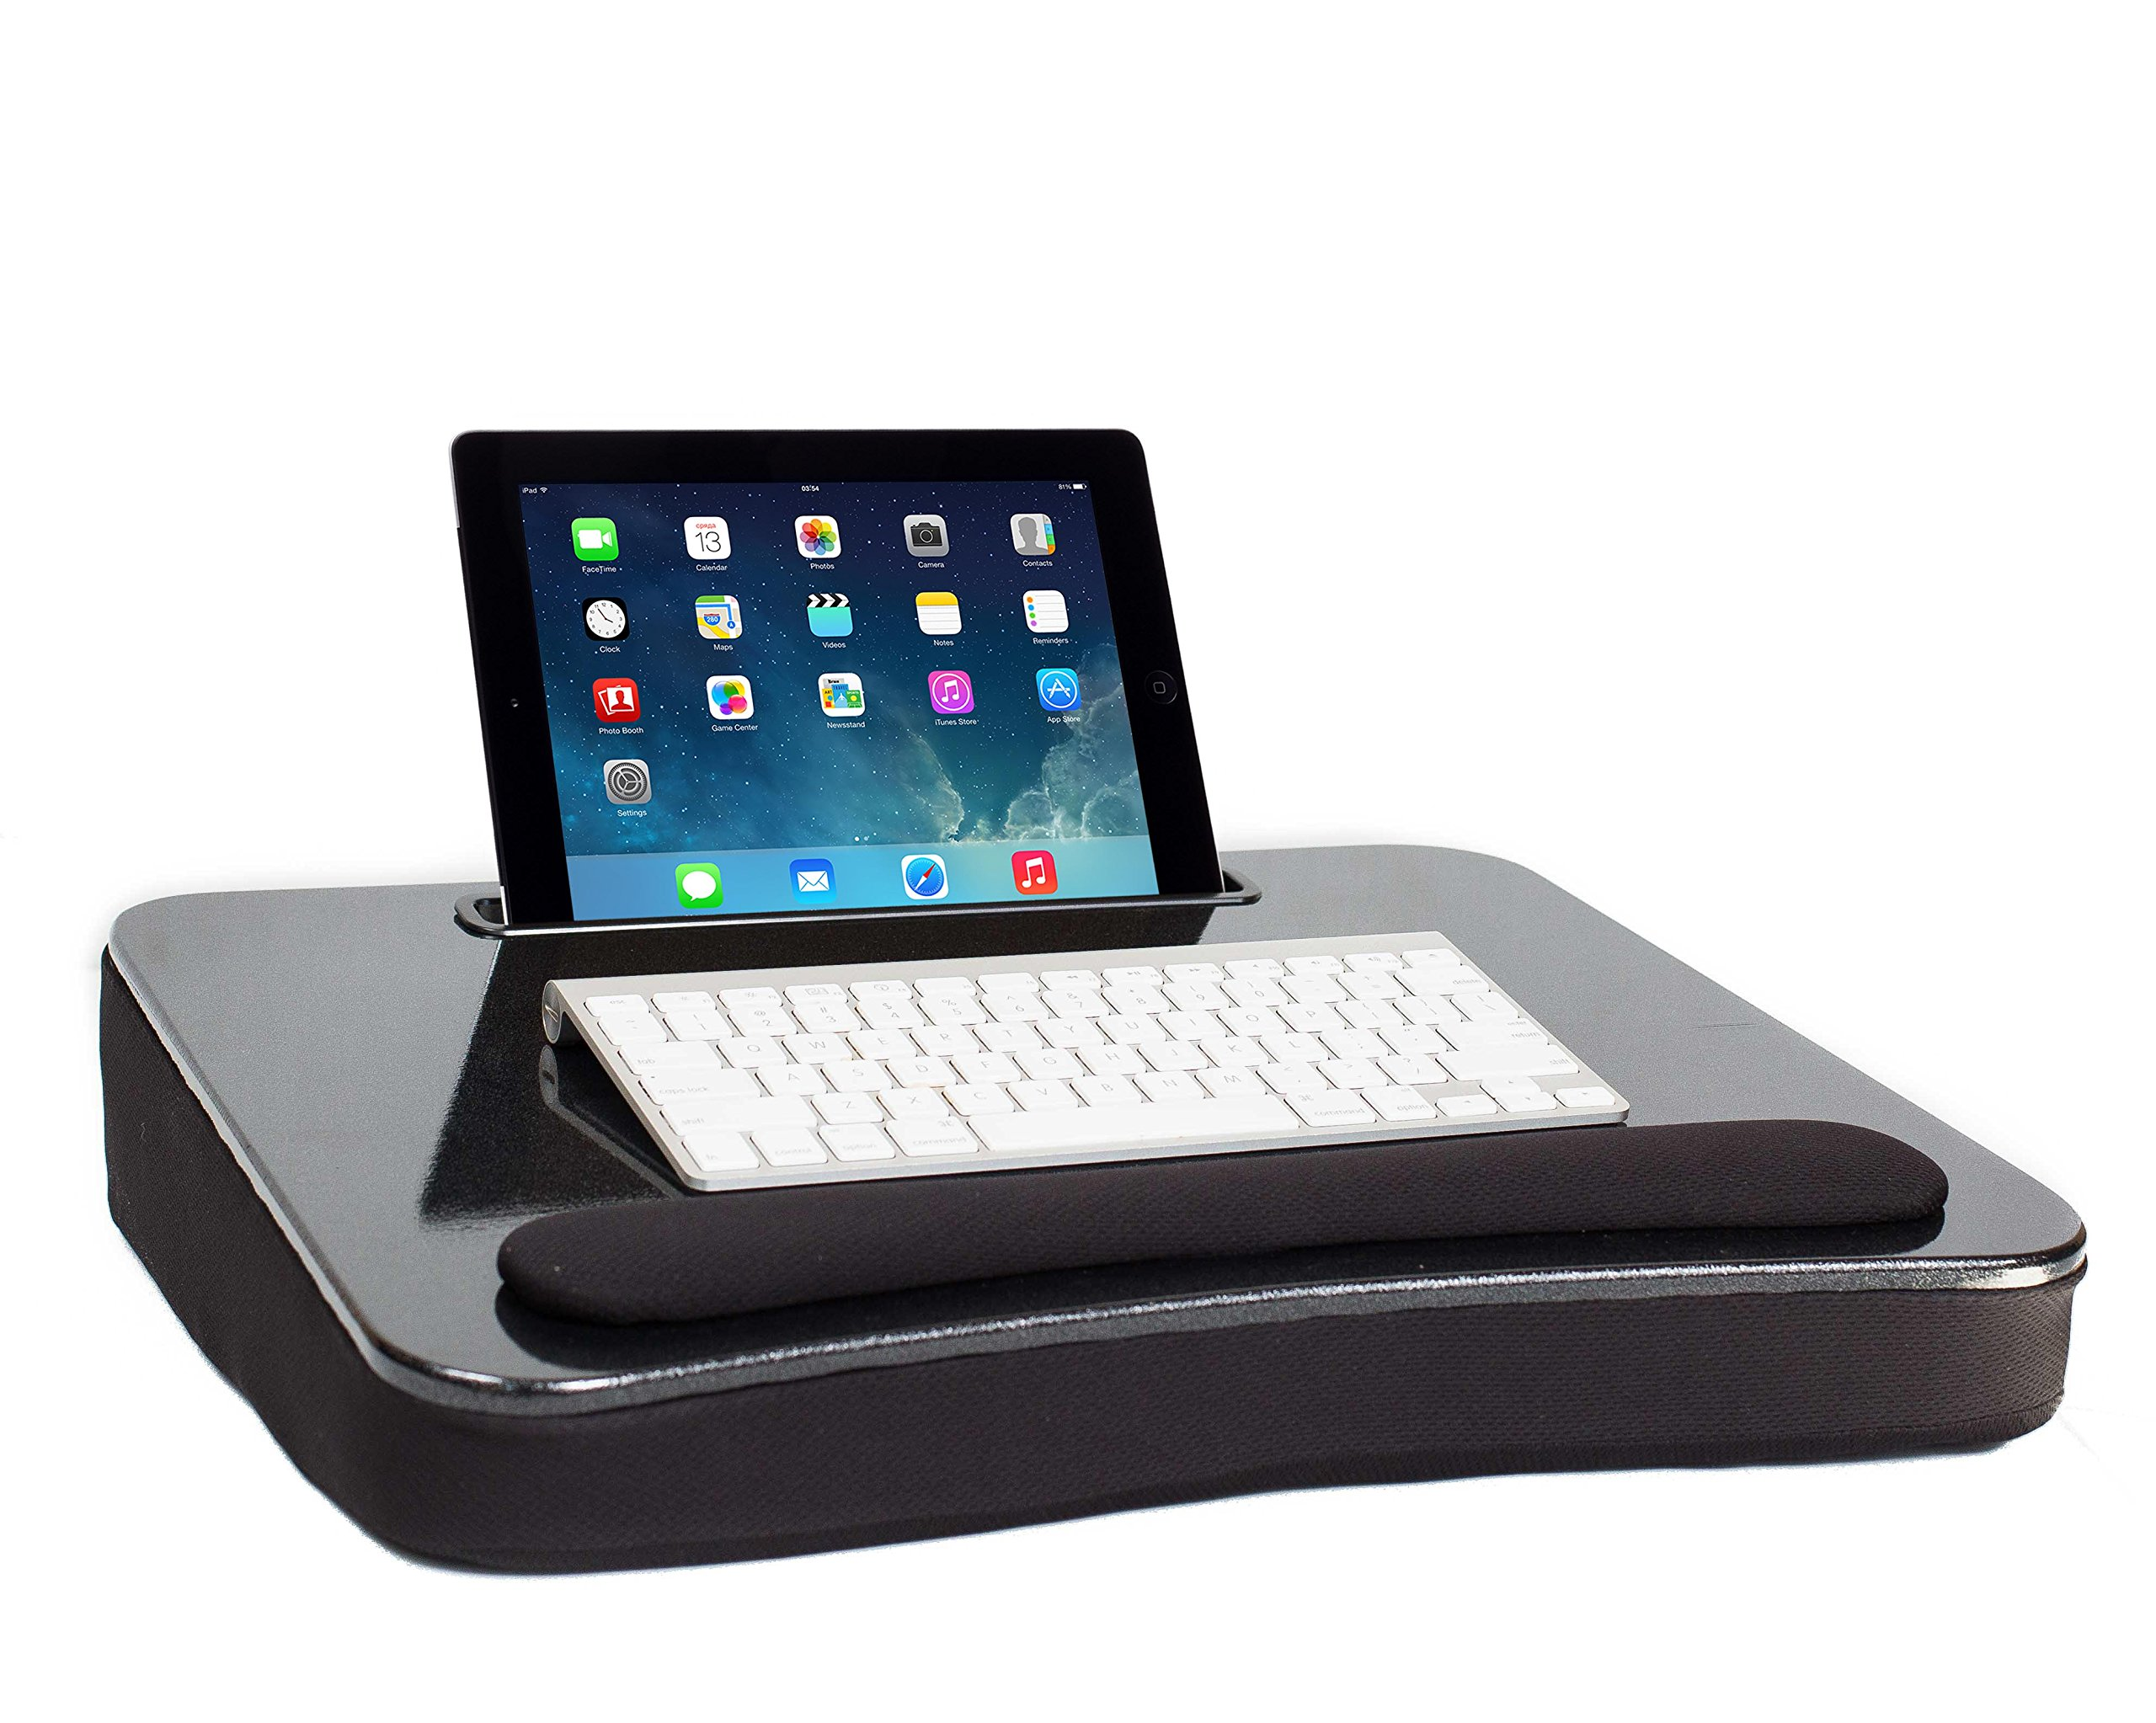 Sofia + Sam All Purpose Lap Desk (Black Sparkle Top) with Tablet Slot | Supports Laptops Up To 17 Inches